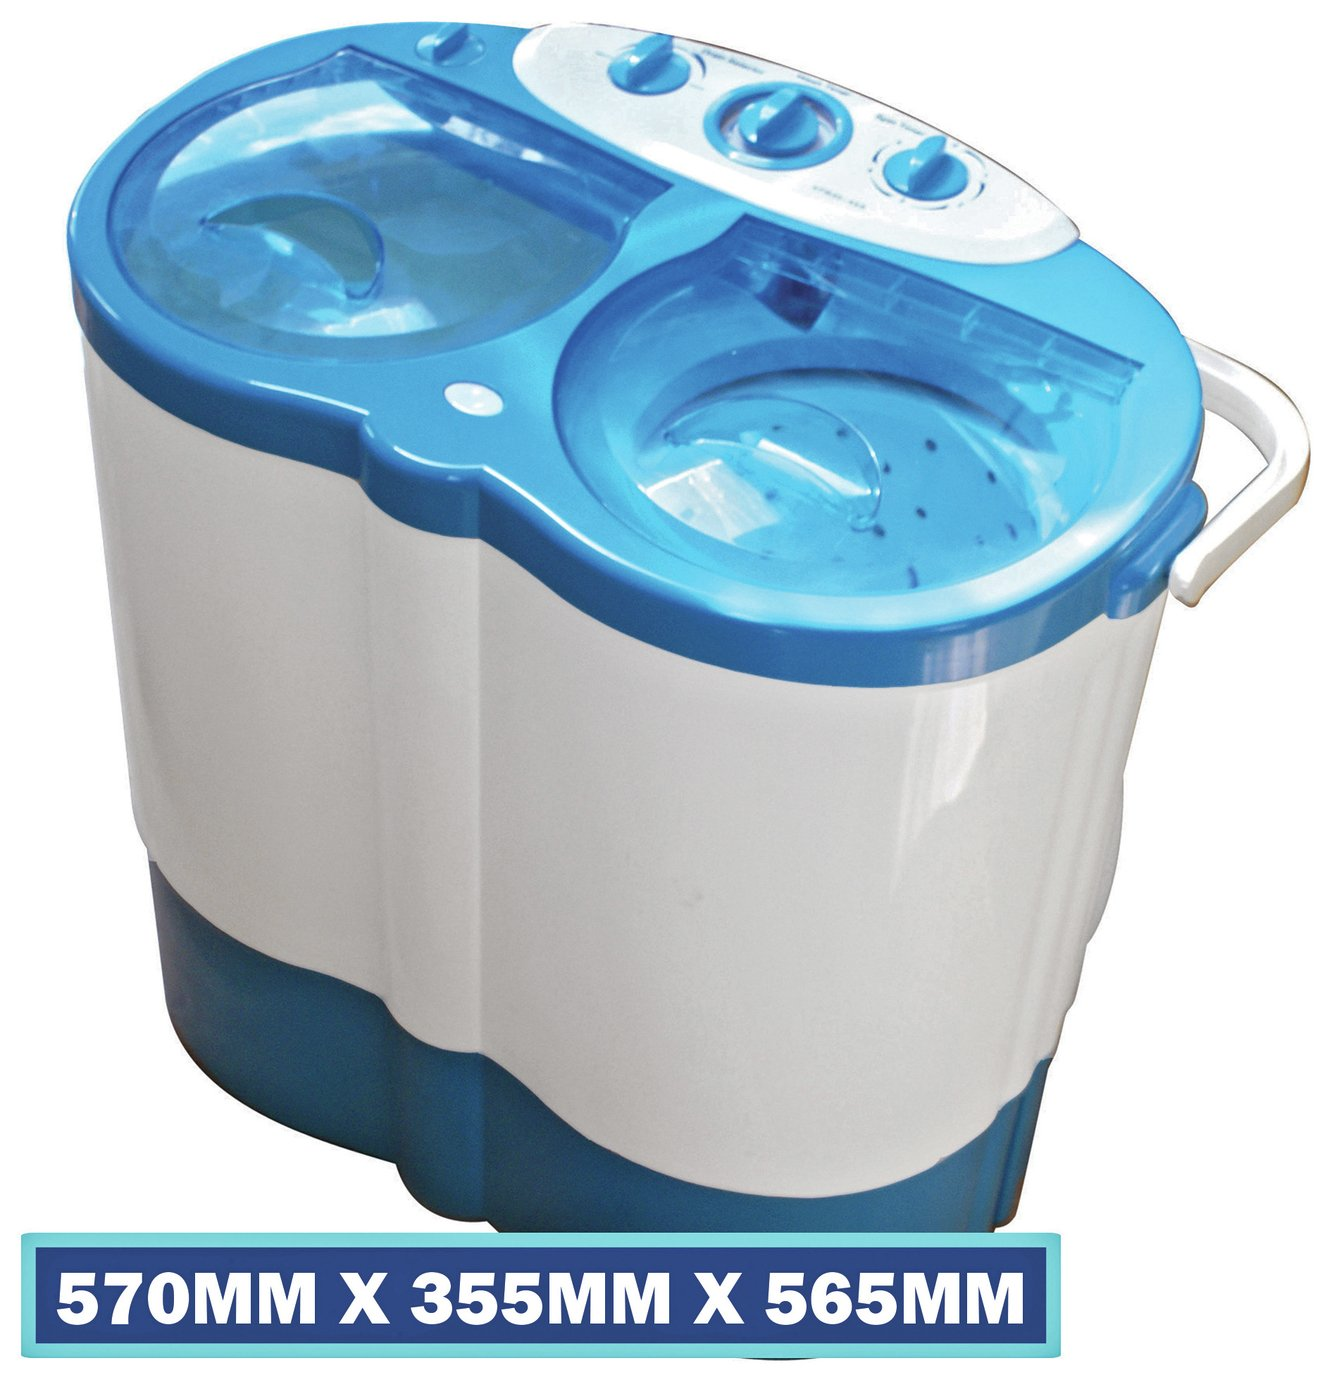 Leisurewize Twin Tub Portable Washing Machine from Leisurewize